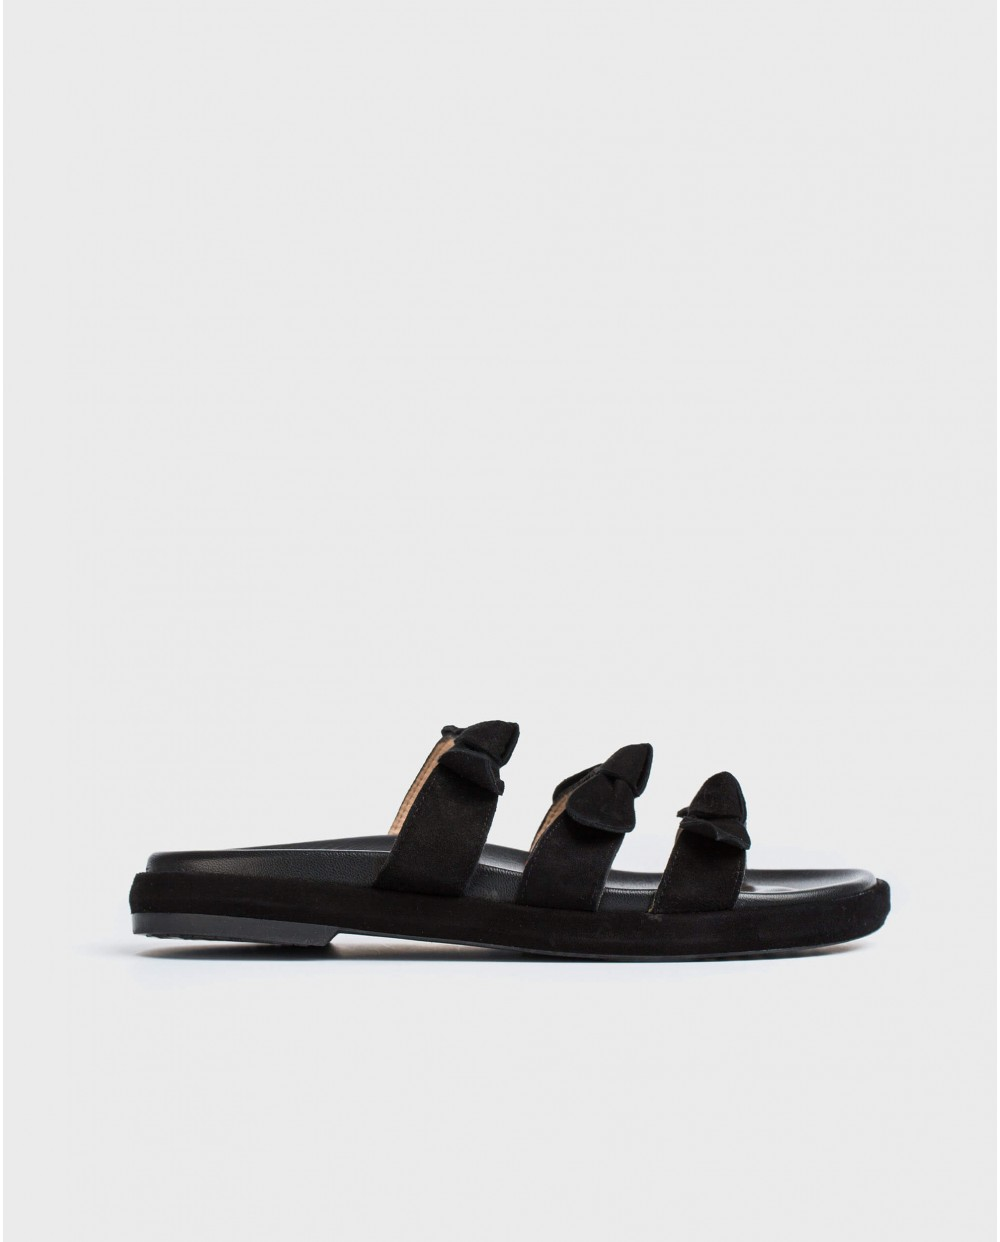 Wonders-Sandals-Flat sandals with bows